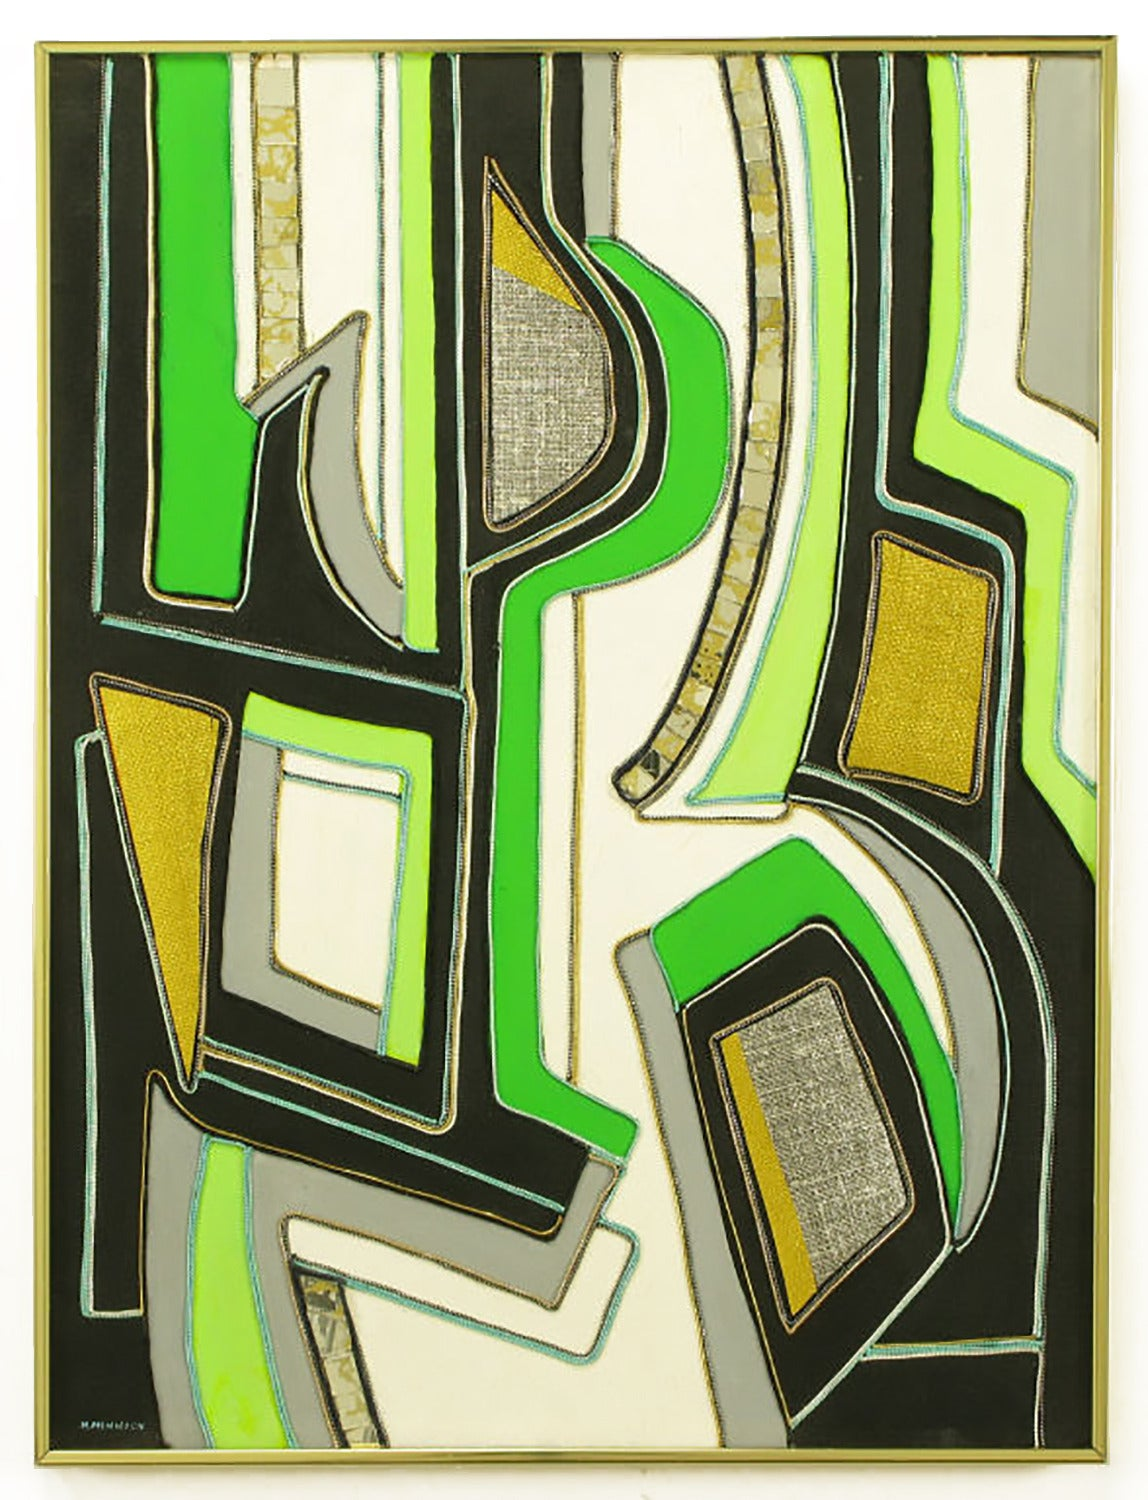 Abstract mixed media art piece using pieces of zippers, textiles, mirror, and painting of acrylics on canvas. Vibrant colors of chartreuse, white, black, grey and green. Signed H. Minnick, in a brushed aluminum gallery style frame.